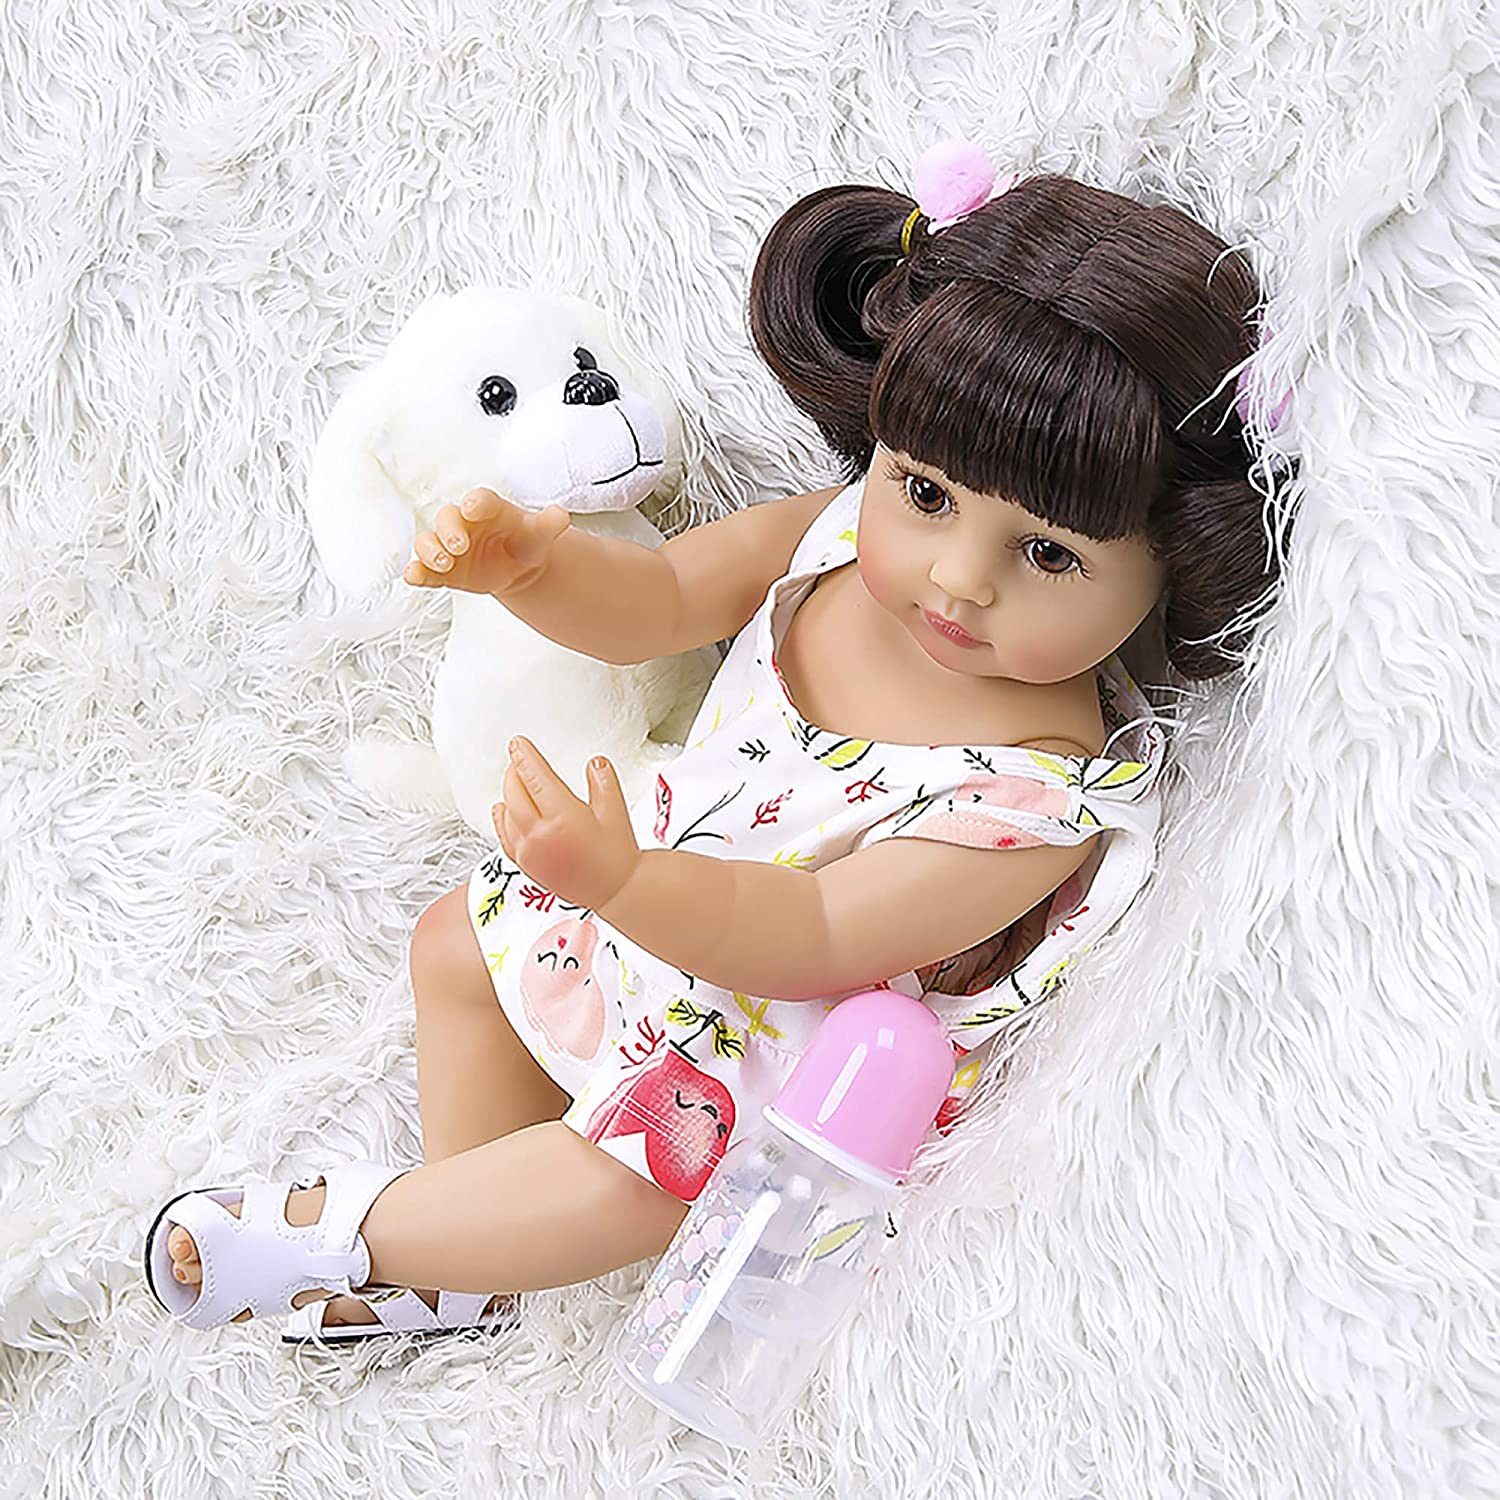 22inches Full Simulation Girl Surprise price Doll in Luxury goods Soft Polka Dot Sili Dress